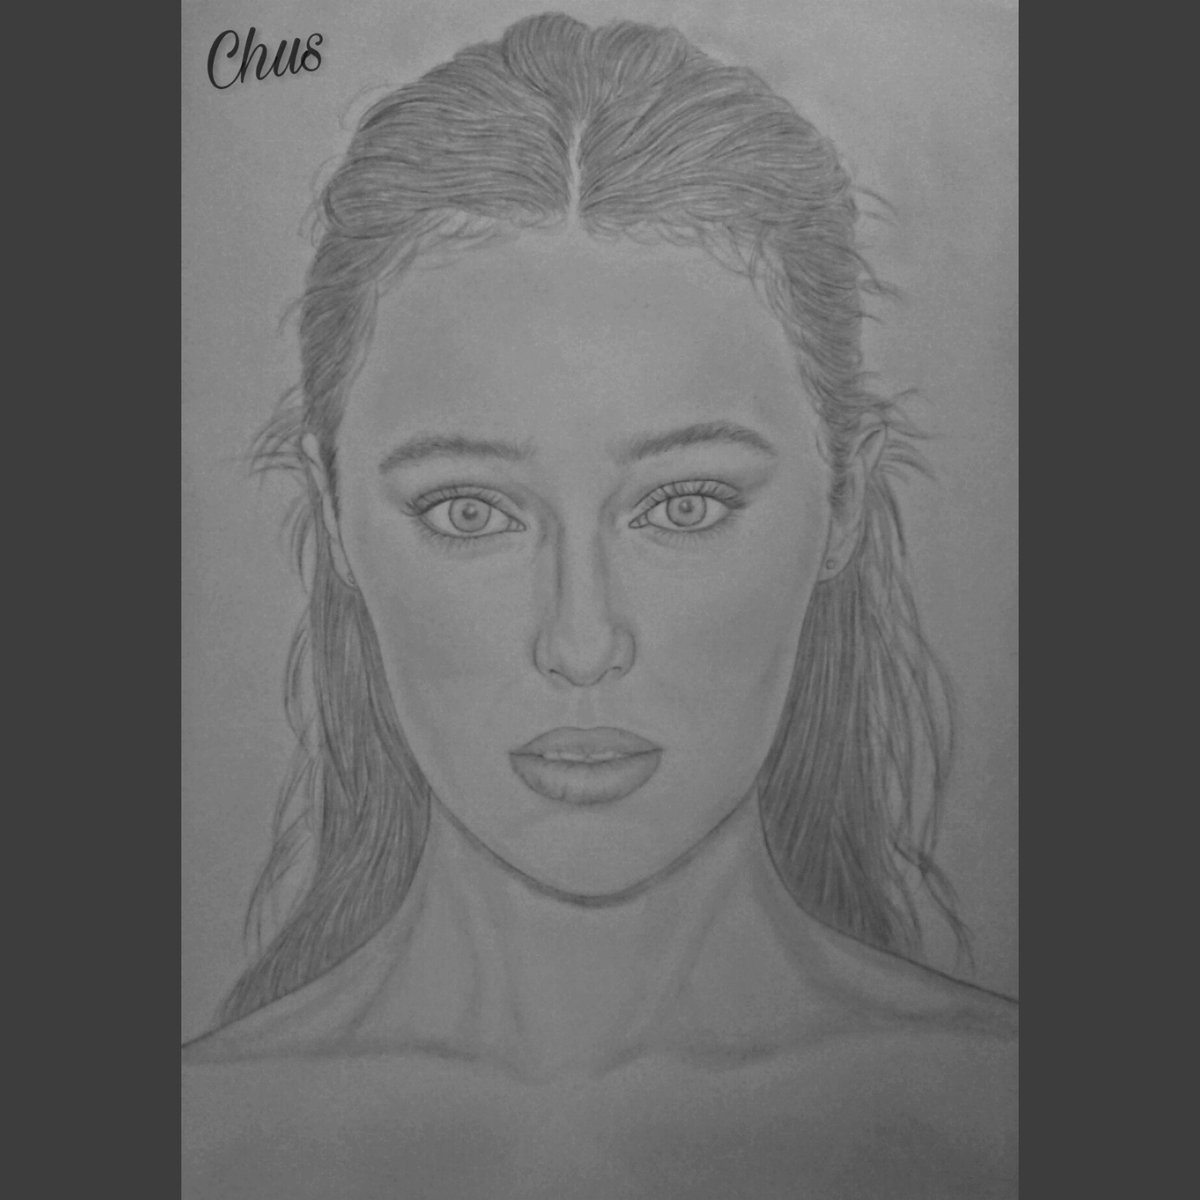 Jesus muras on twitter 🌹new drawing finished to the beautiful alycia debnam carey🌹 i hope you like it😊 debnamcarey 💕 my new drawing